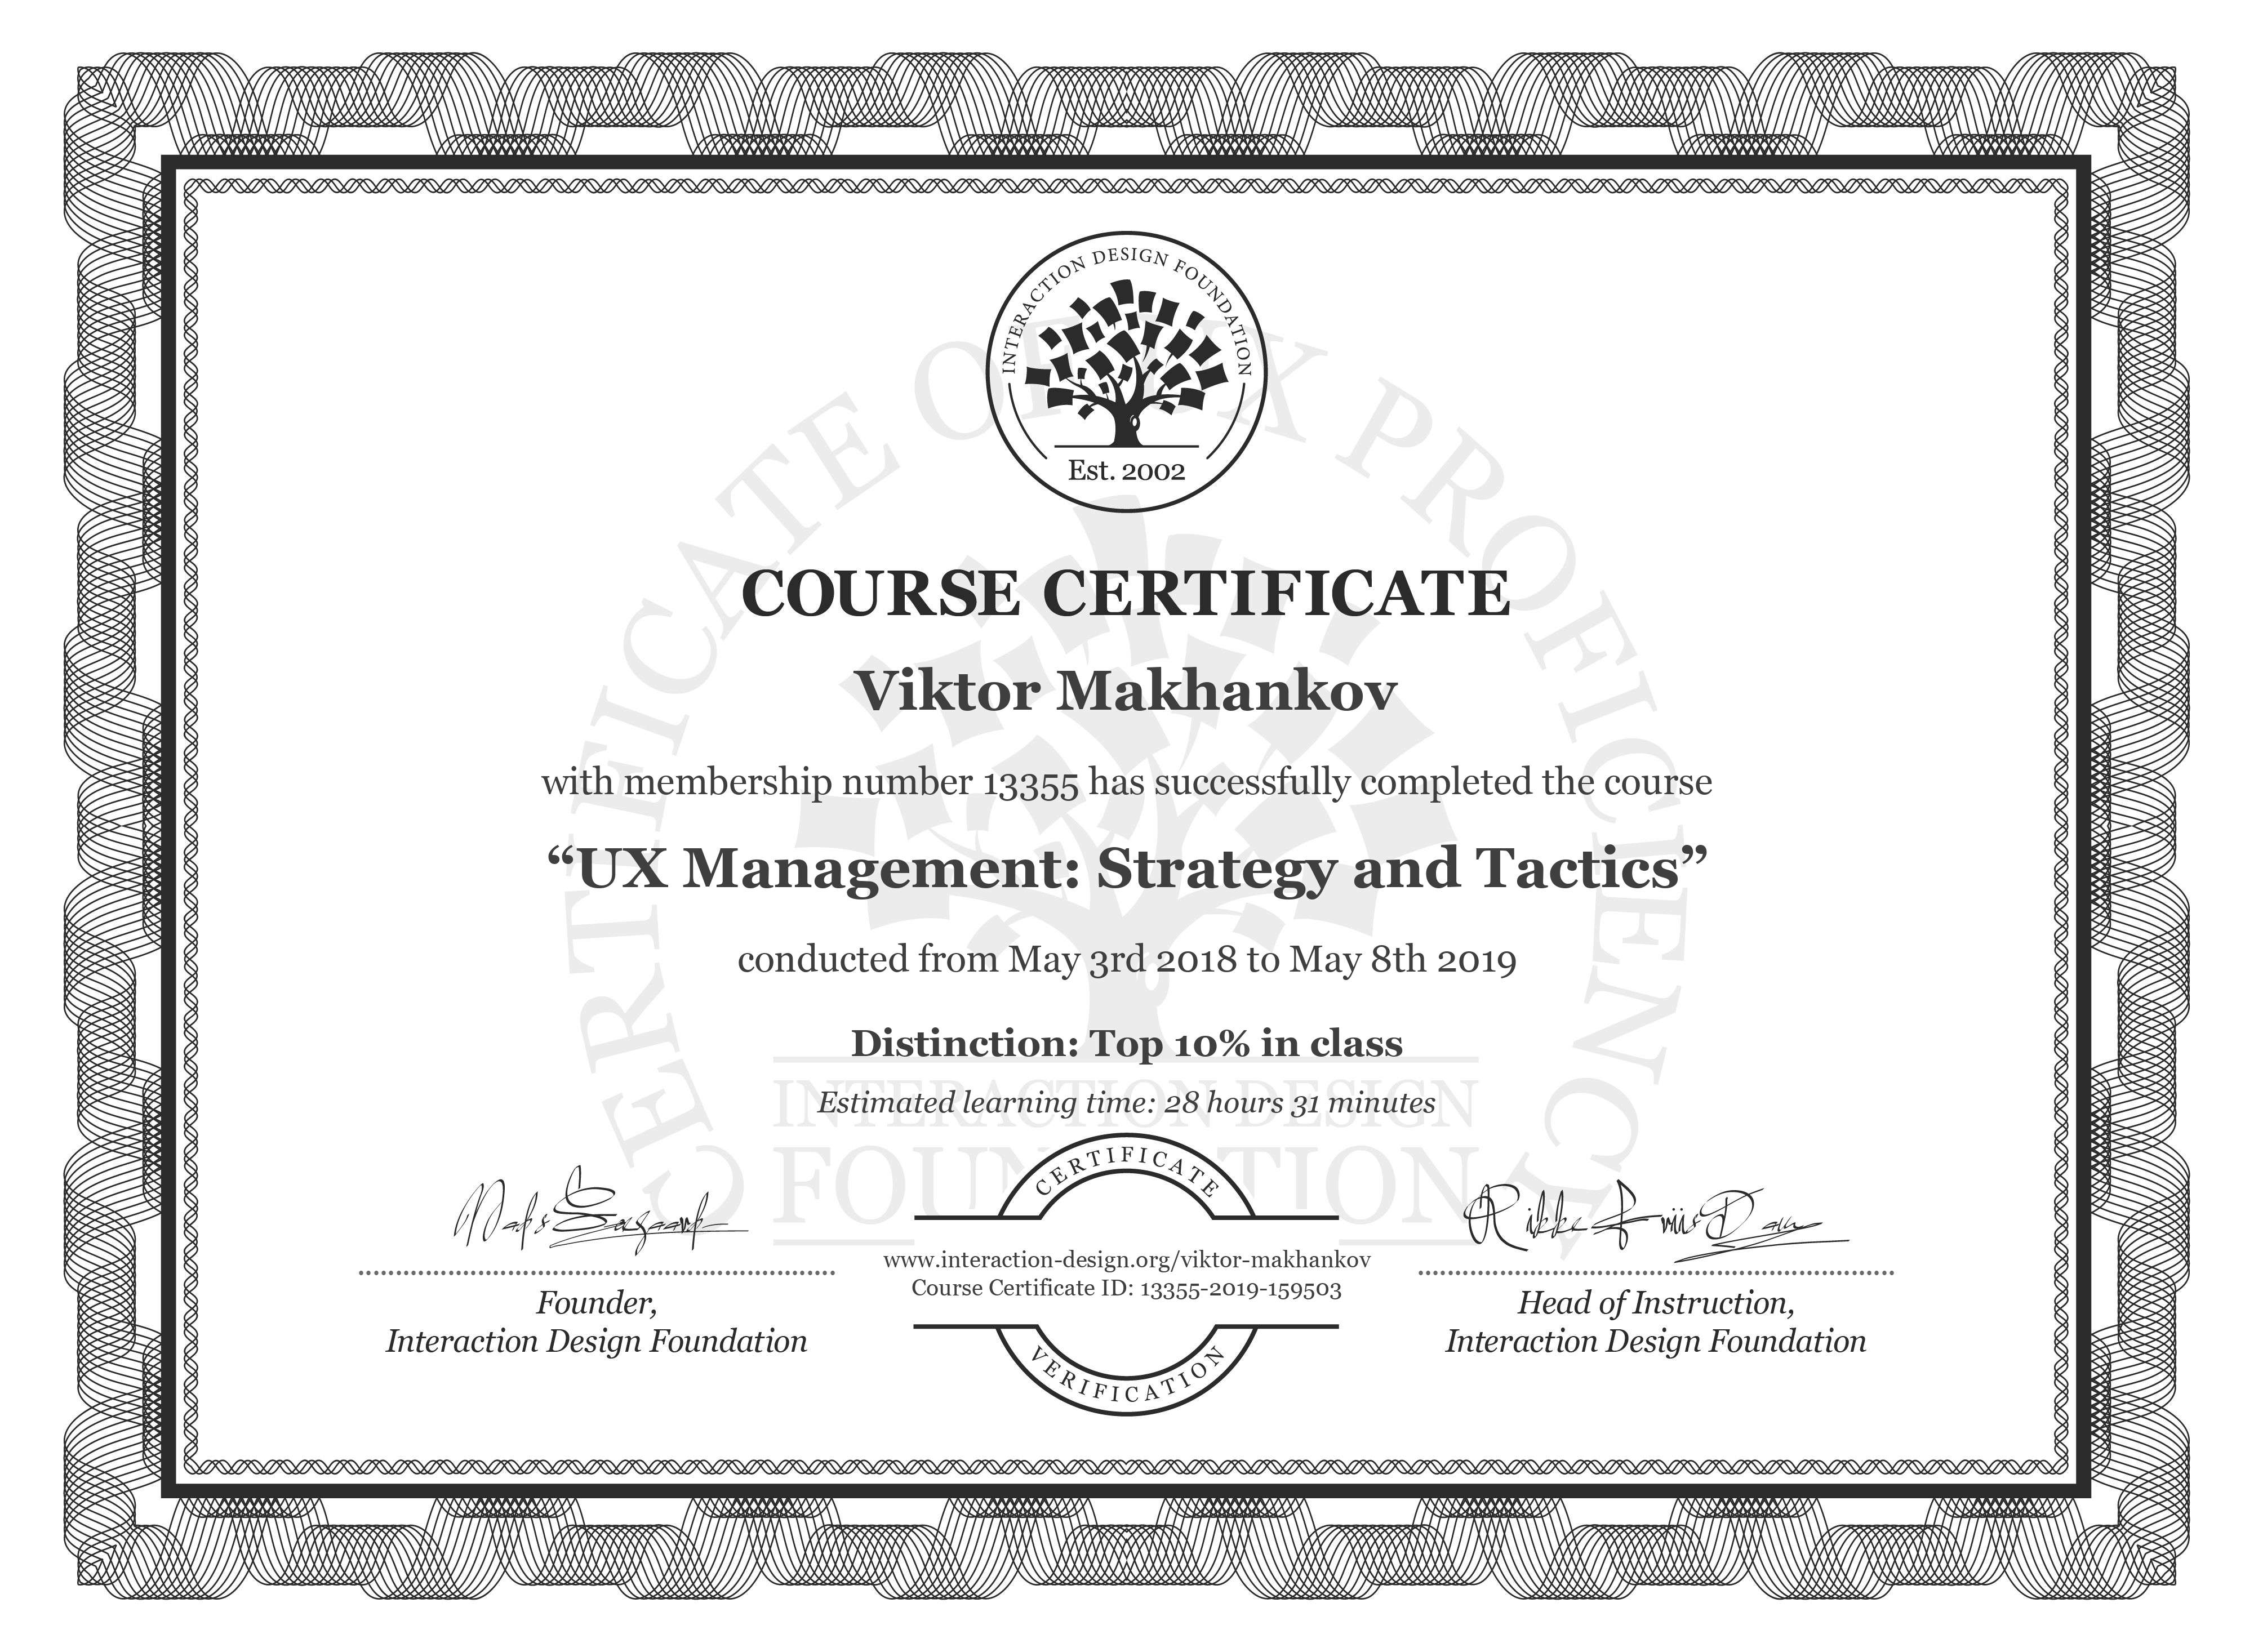 Viktor Makhankov's Course Certificate: UX Management: Strategy and Tactics